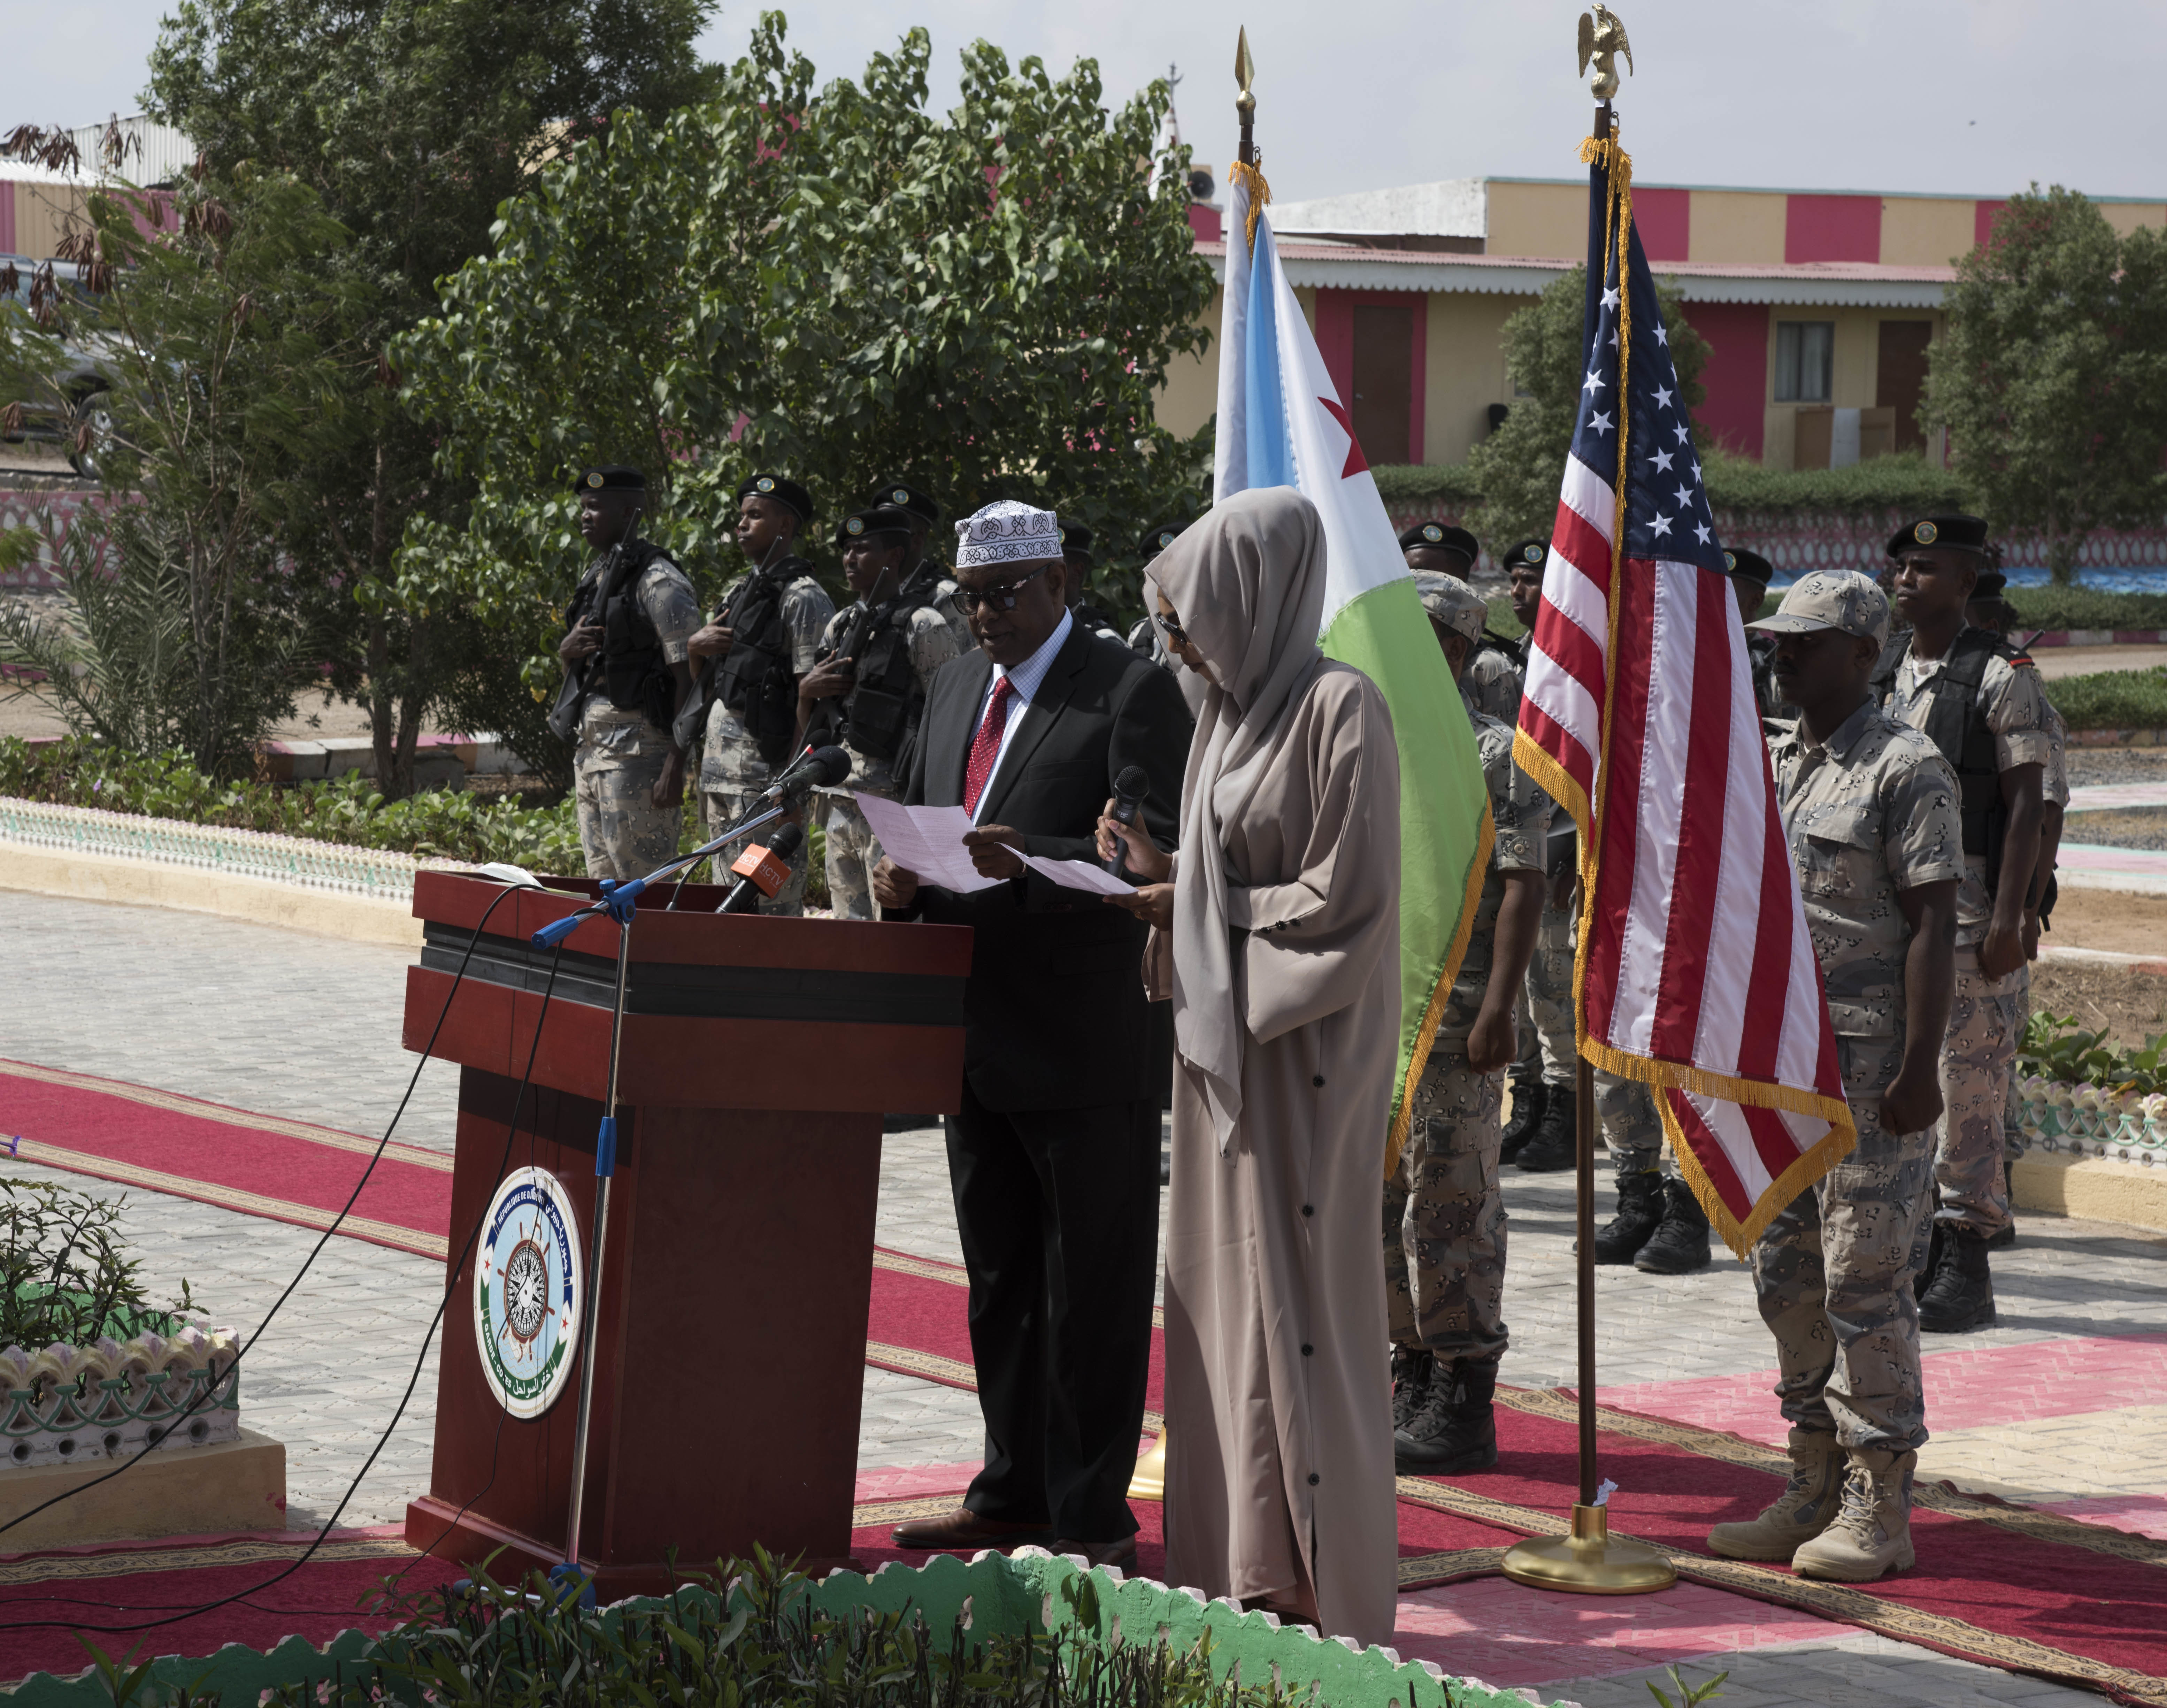 Mohamed Moalin Hassan, state minister for the ministry of internal security, Federal Government of Somalia, gives remarks during the opening ceremony for exercise Cutlass Express 2018 Jan. 31 in Djibouti, Djibouti. Cutlass Express is designed to improve regional cooperation, maritime domain awareness and information sharing practices to increase capabilities between the U.S., East African and Western Indian Ocean nations. (U.S. Air National Guard Photo by SSgt Allyson Manners / Released)